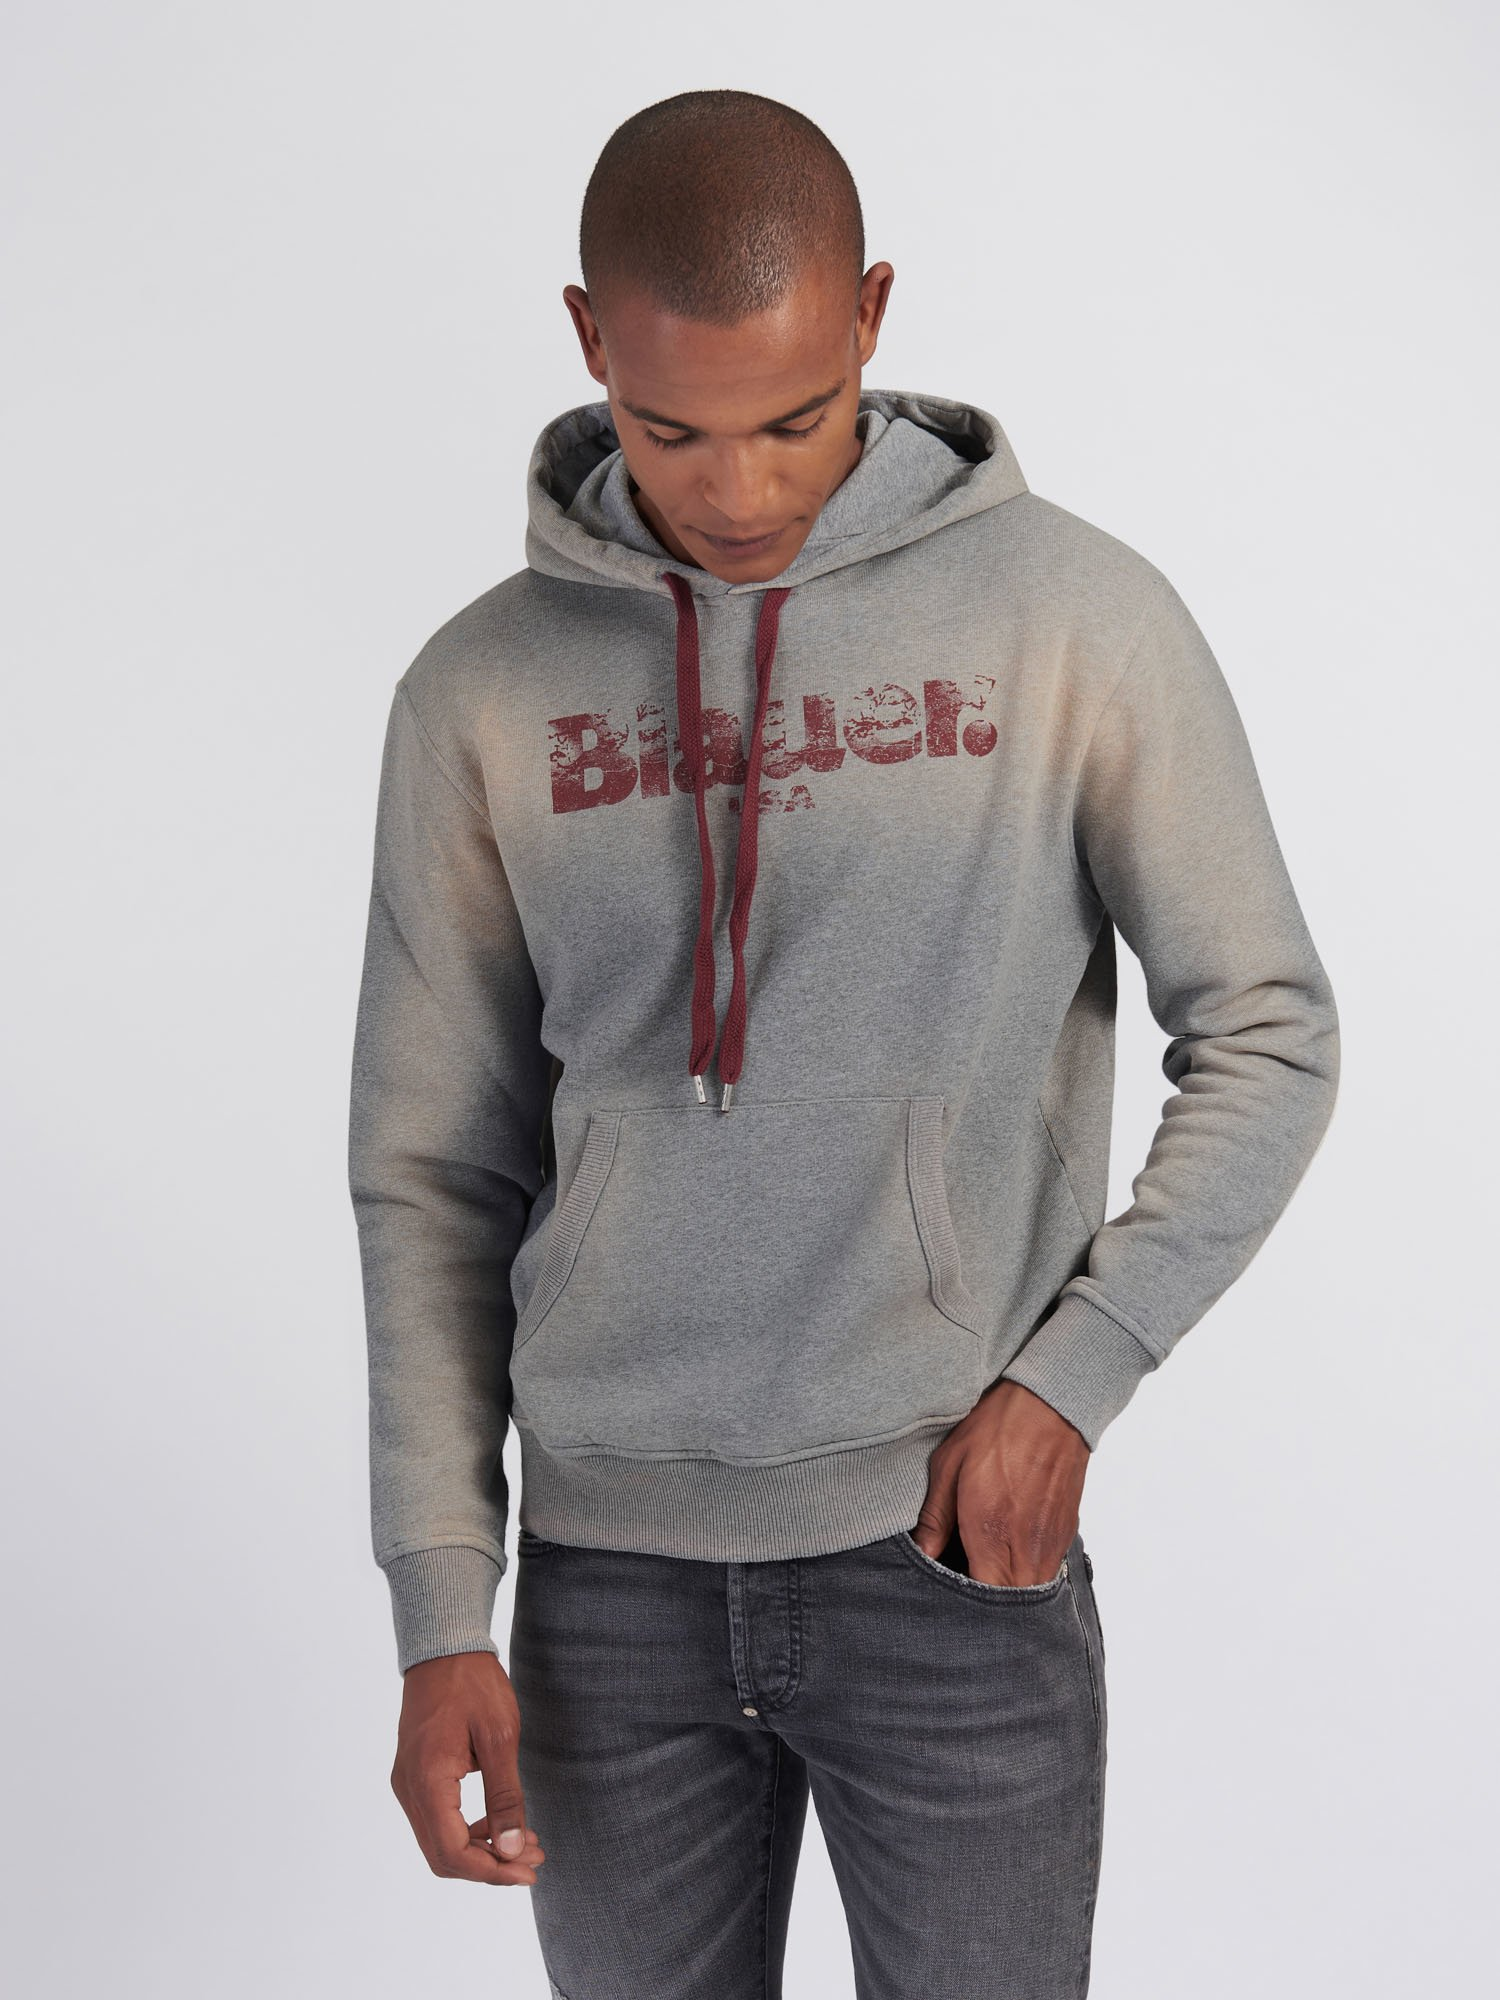 POUCH POCKET SWEATSHIRT WITH HOOD - Blauer